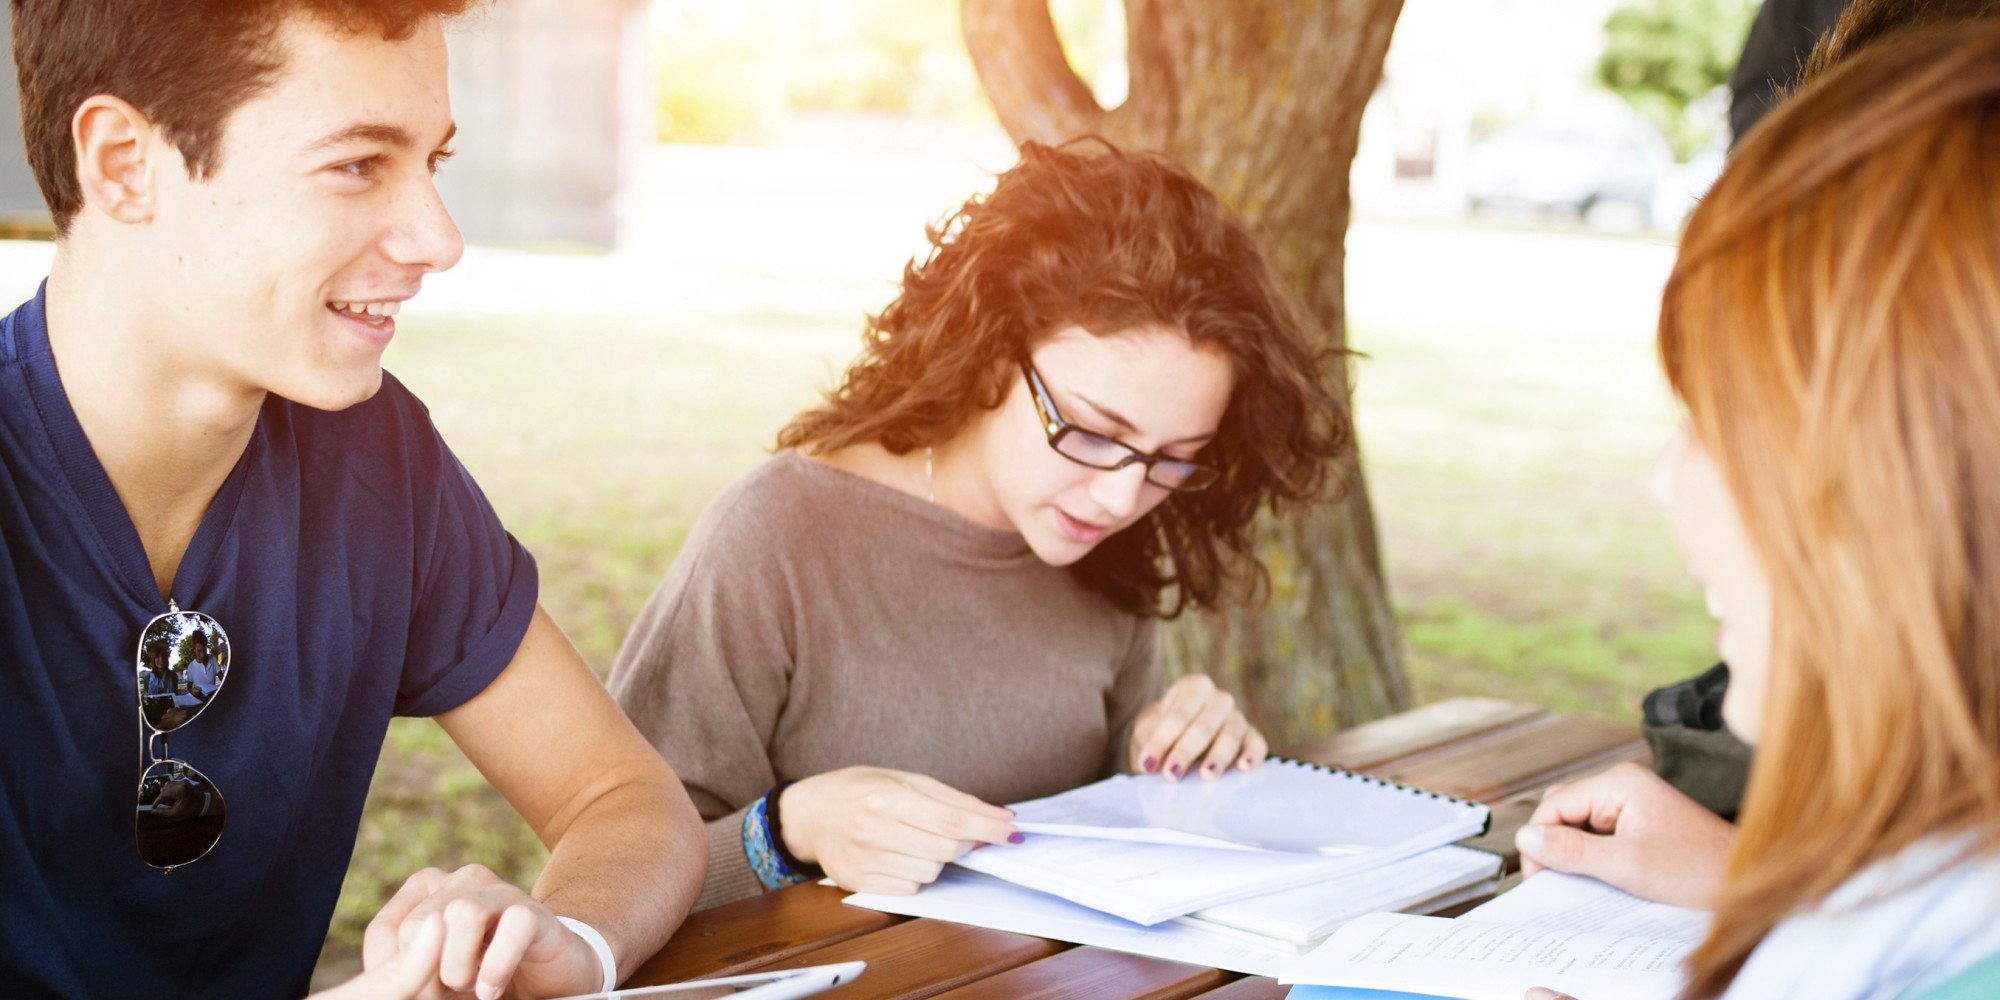 Assignment help Canada,Assignment help Singapore, Do my homework Services in UK,Creative Writing